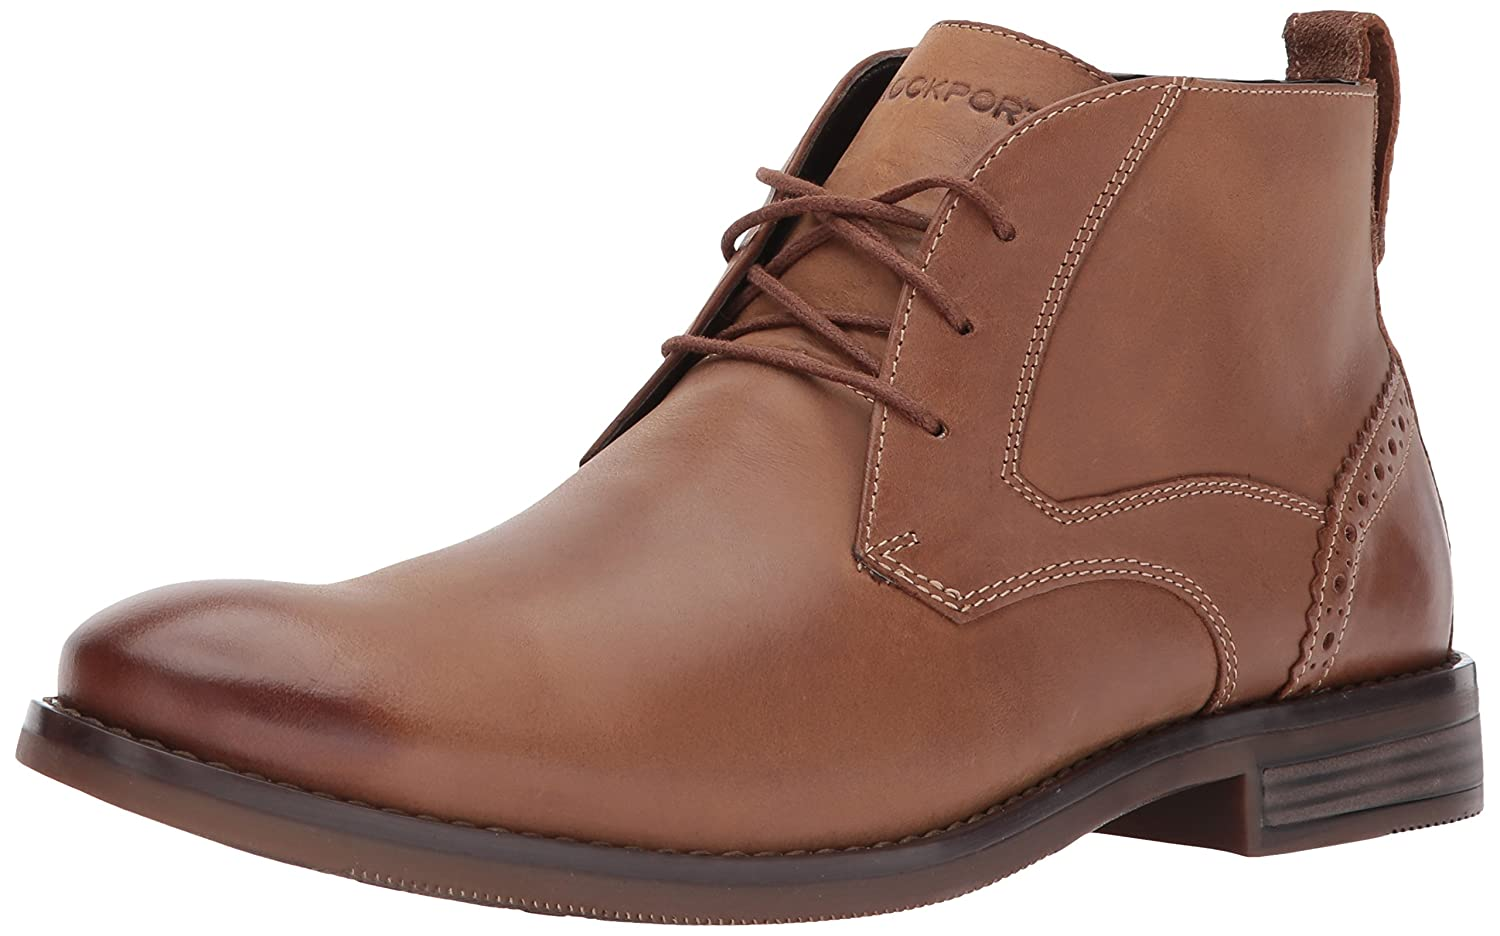 Rockport Men's Wynstin Chukka Chukka Boot